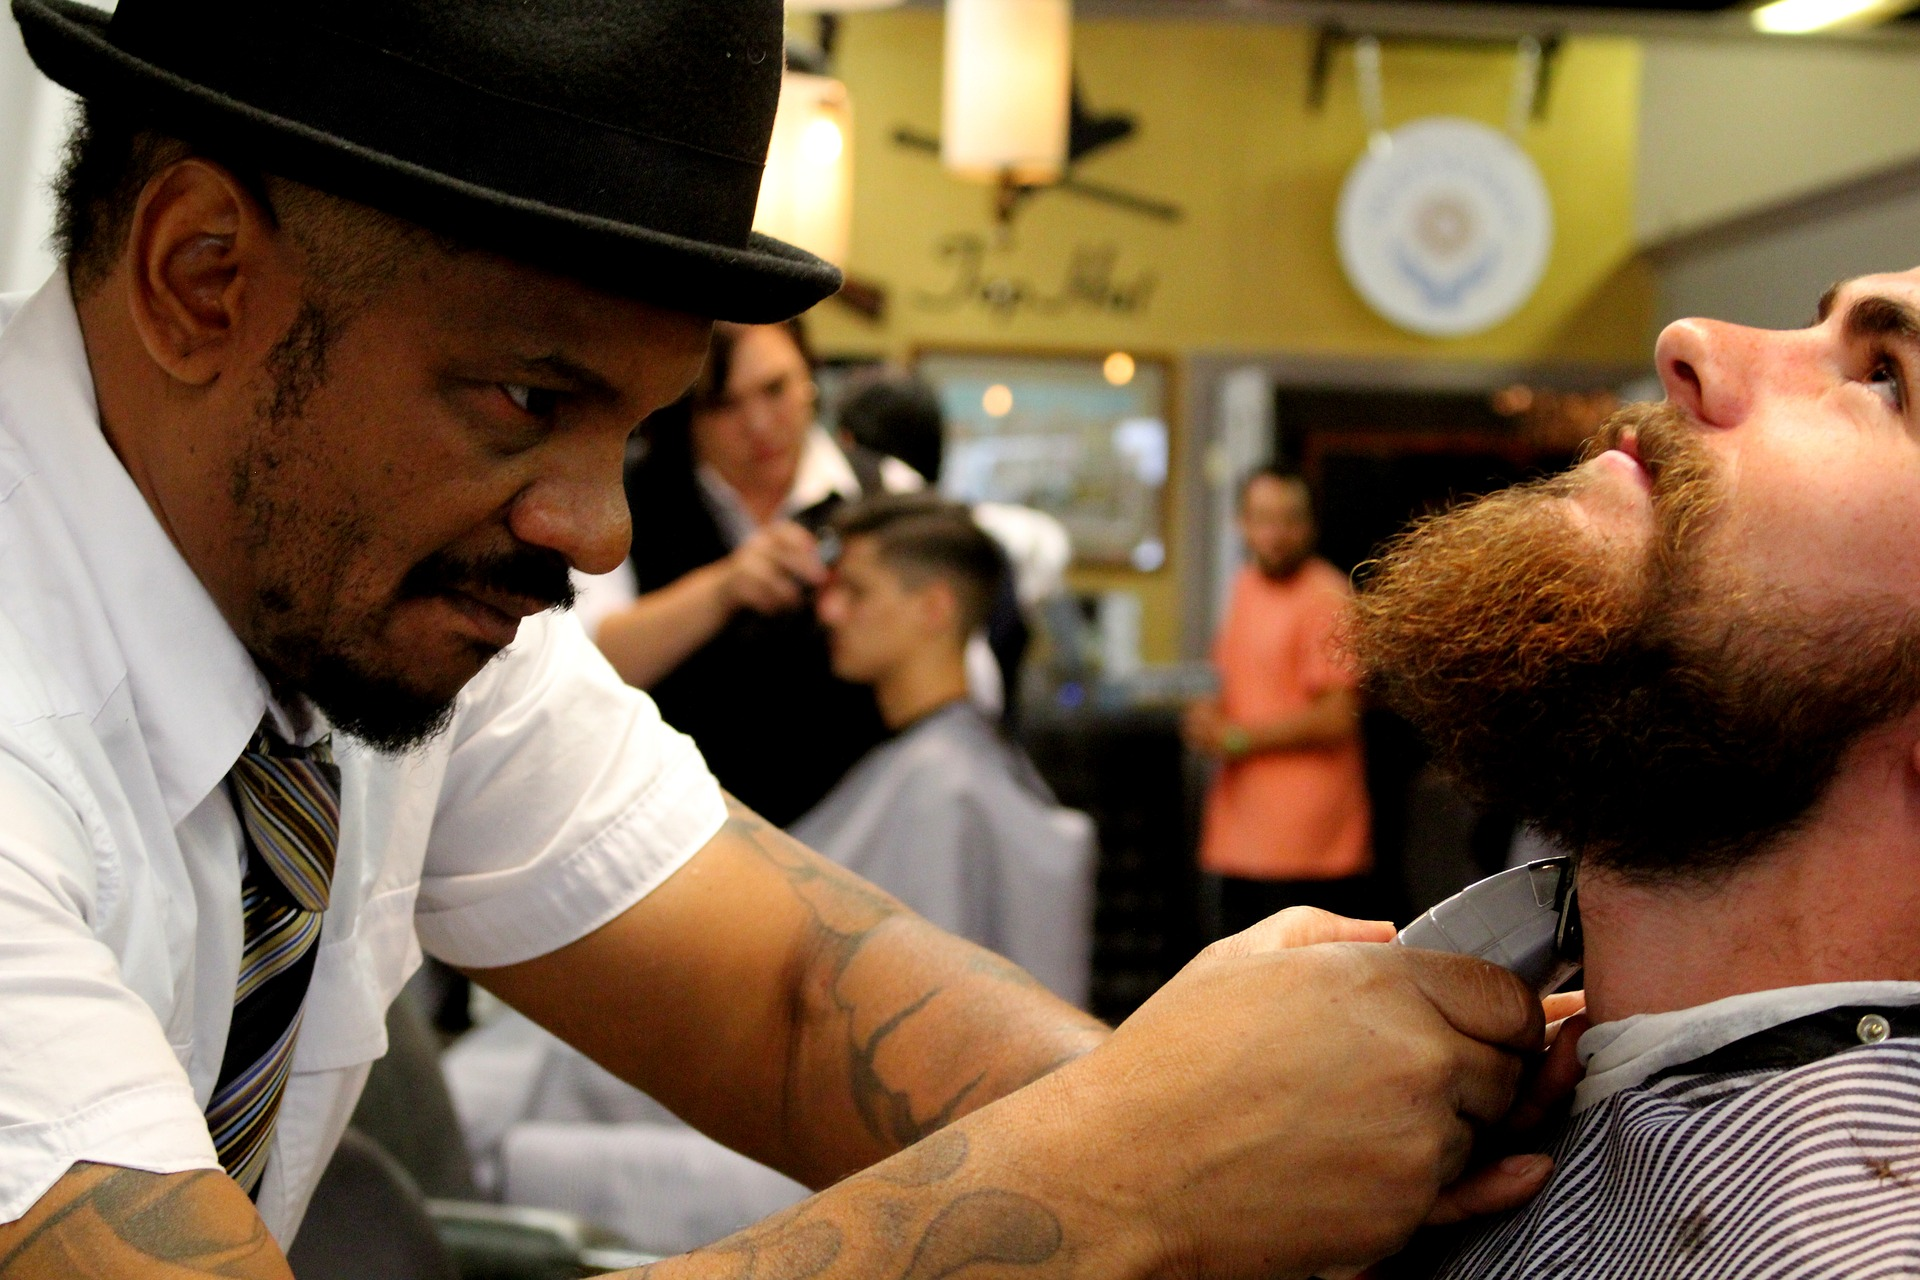 A barber uses a trimmer to outline the edge of a client's beard around their neck.